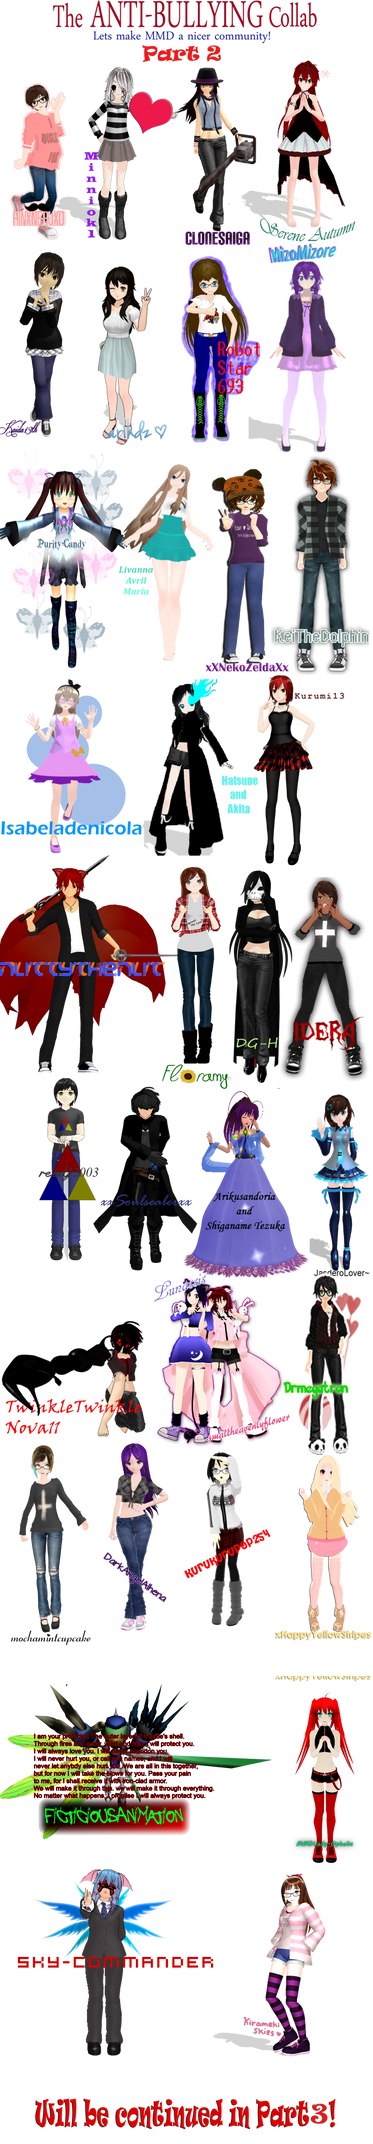 [MMD] Anti-Bullying Collab ~PART 2~